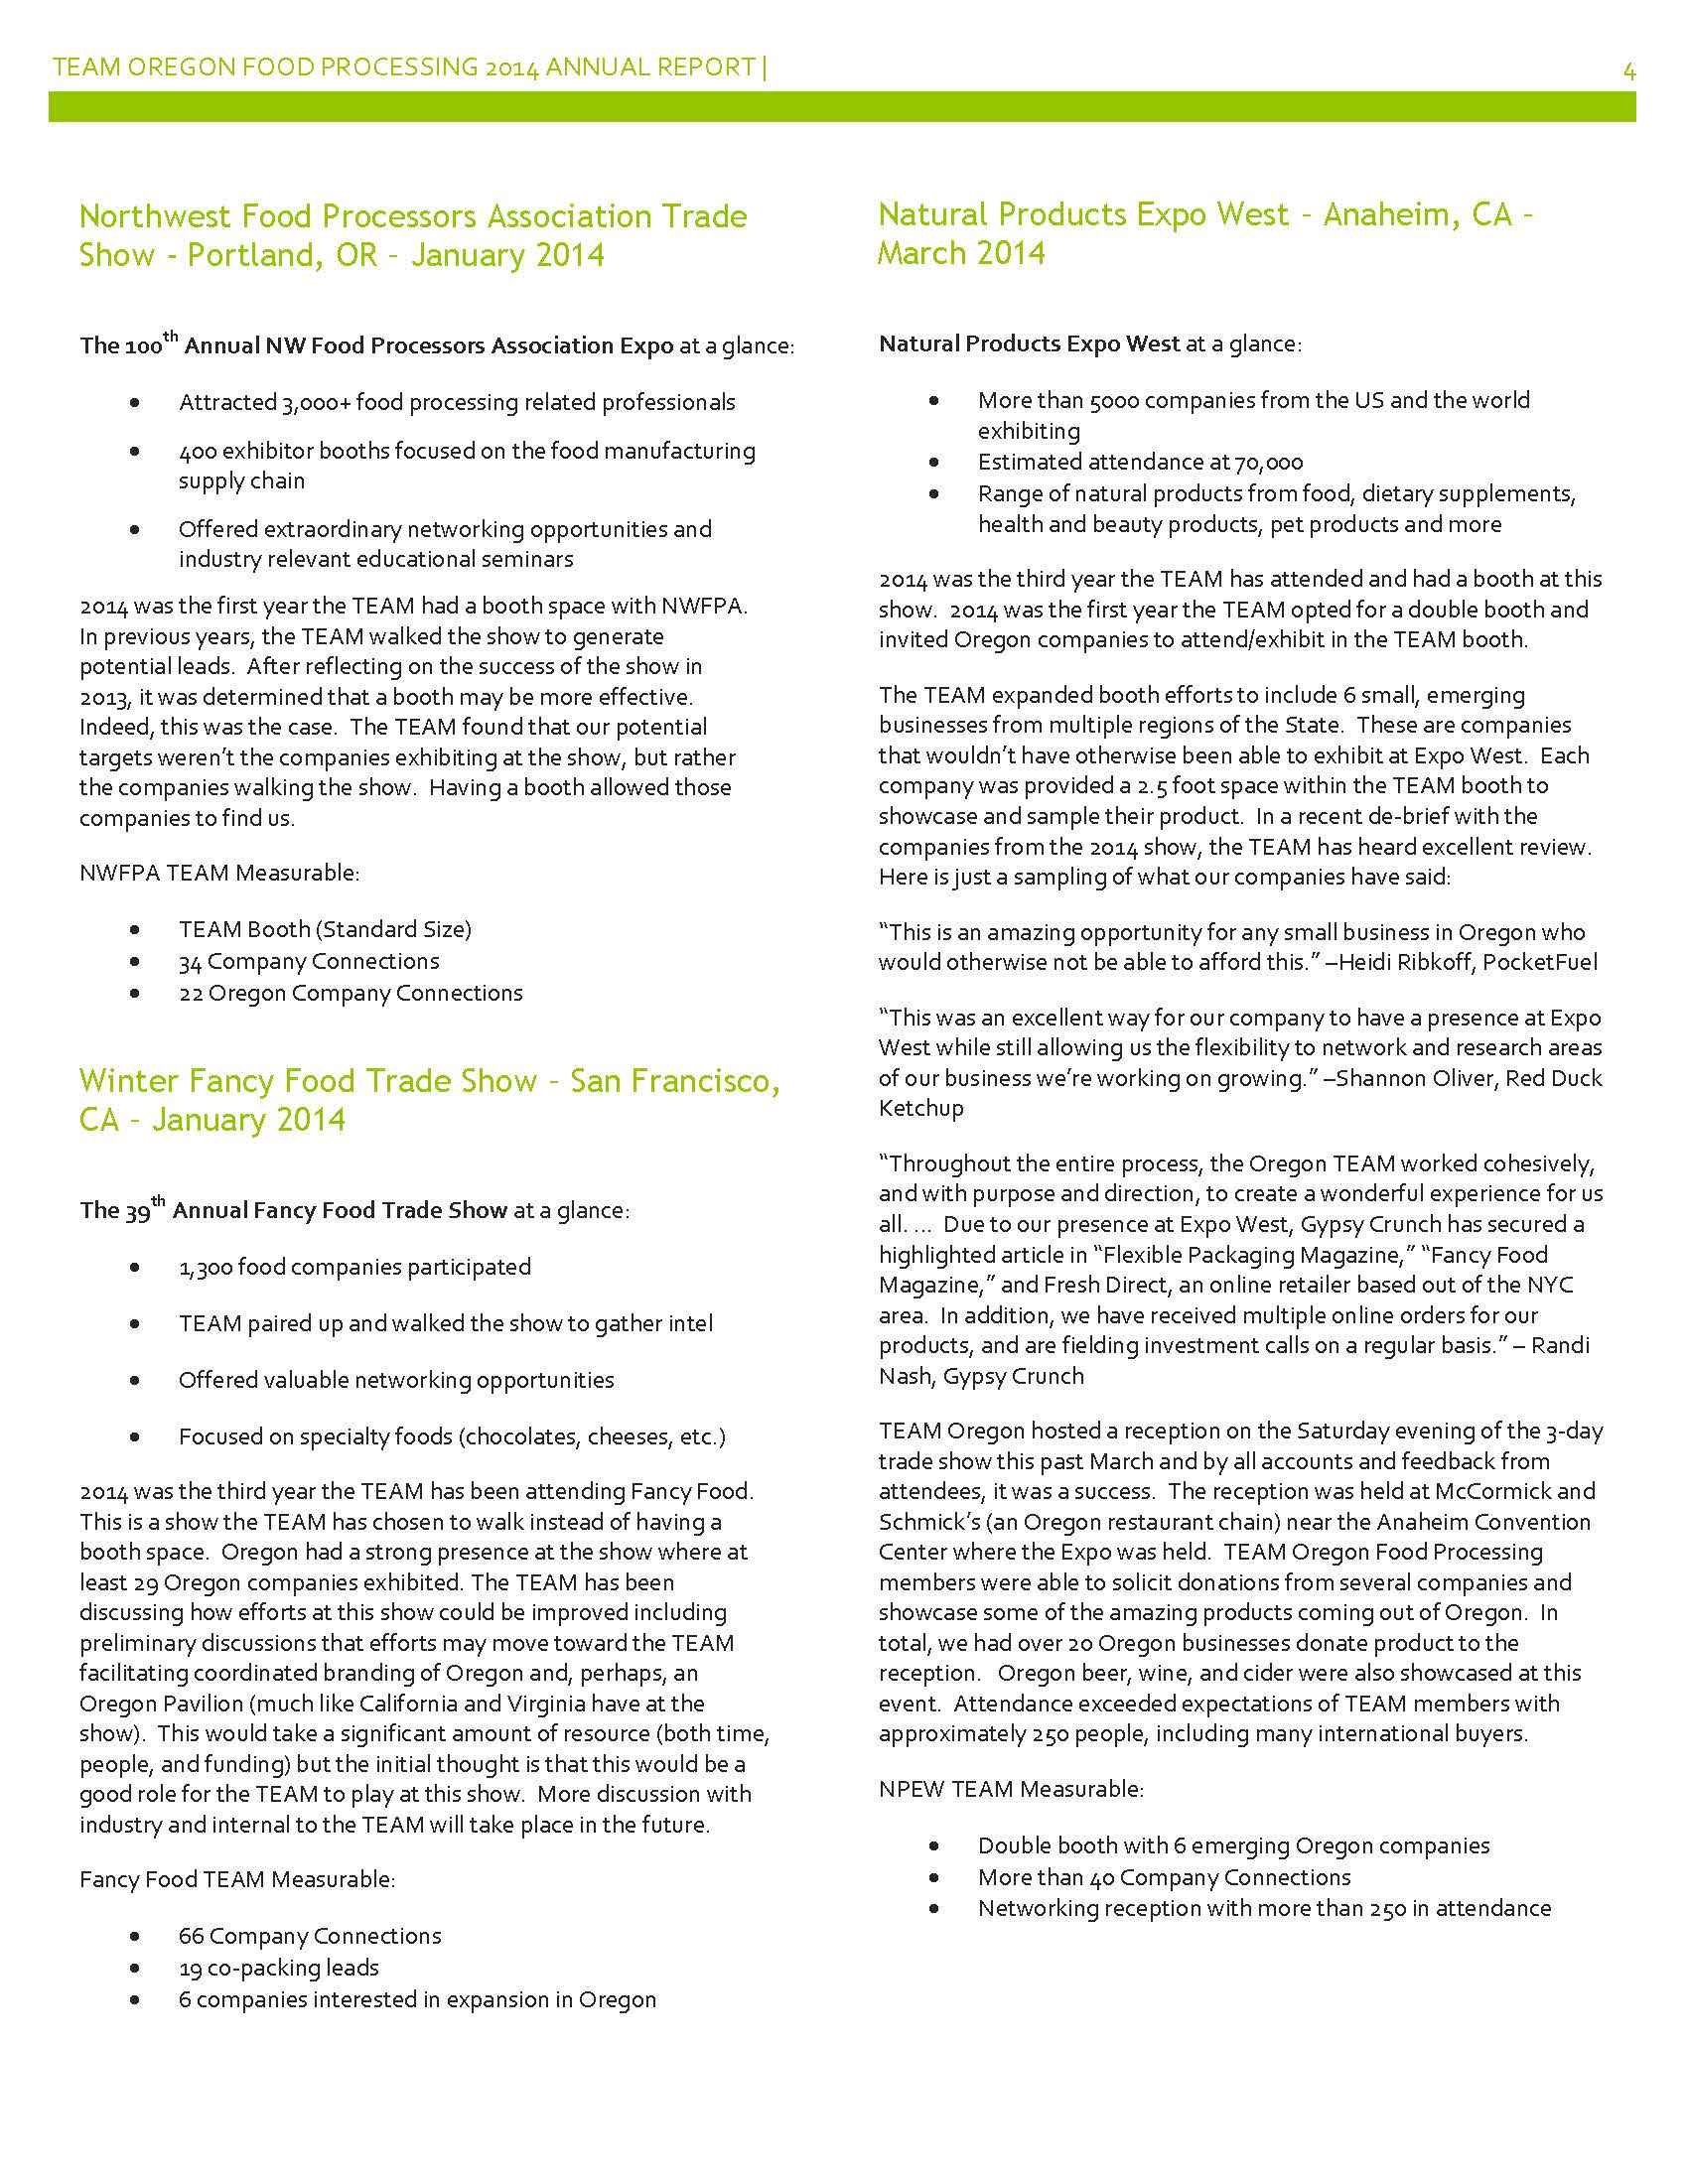 TEAM 2014 Annual Report FINAL_Page_4